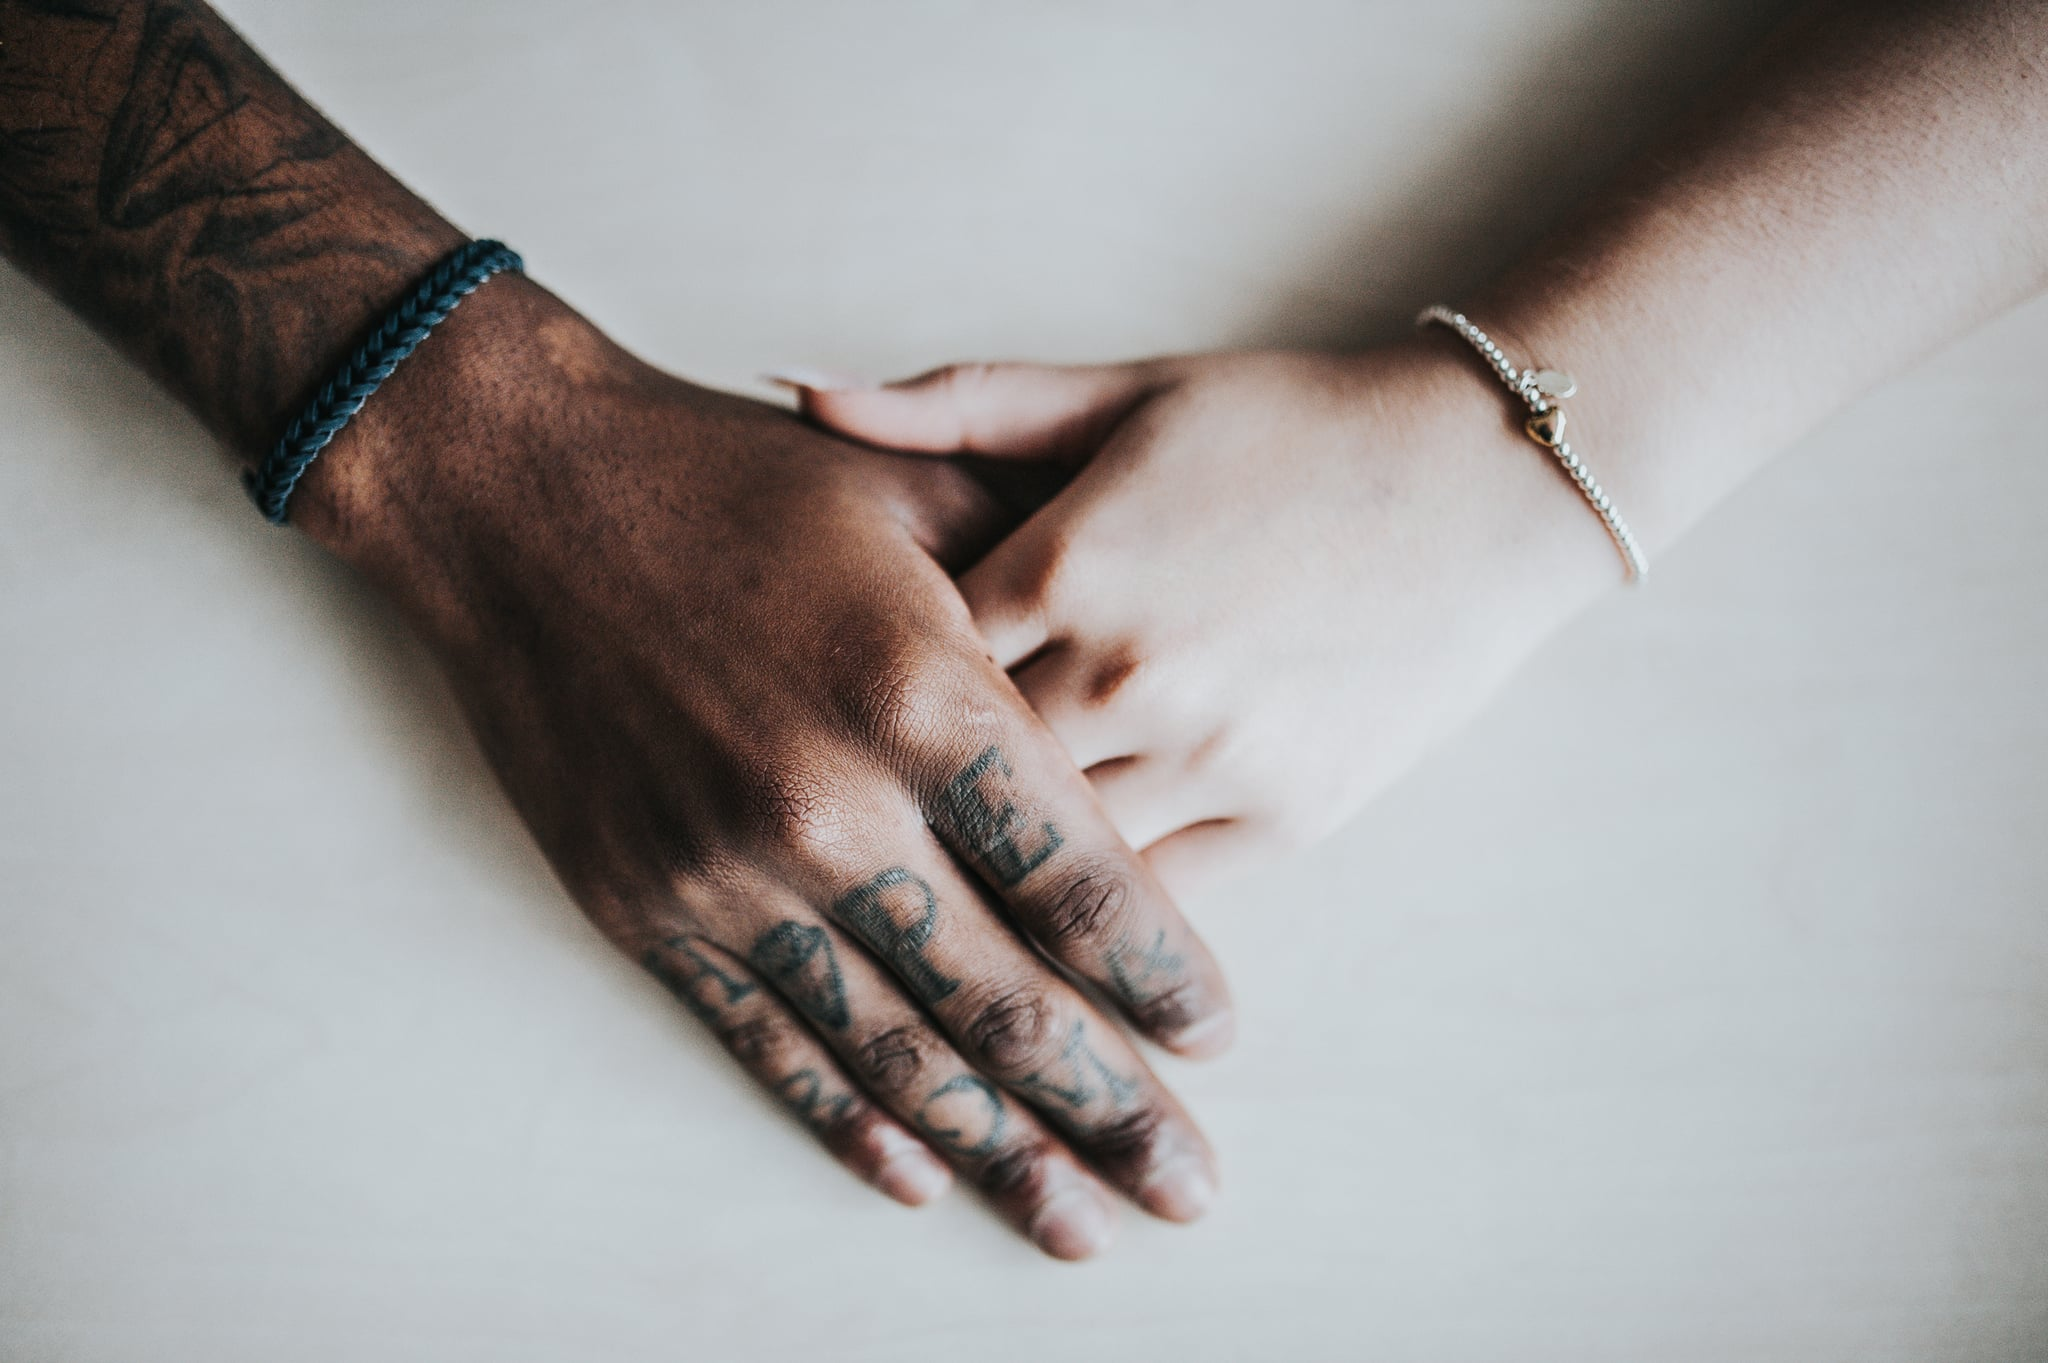 15 Questions to See How Honest You Really Are With Your Partner